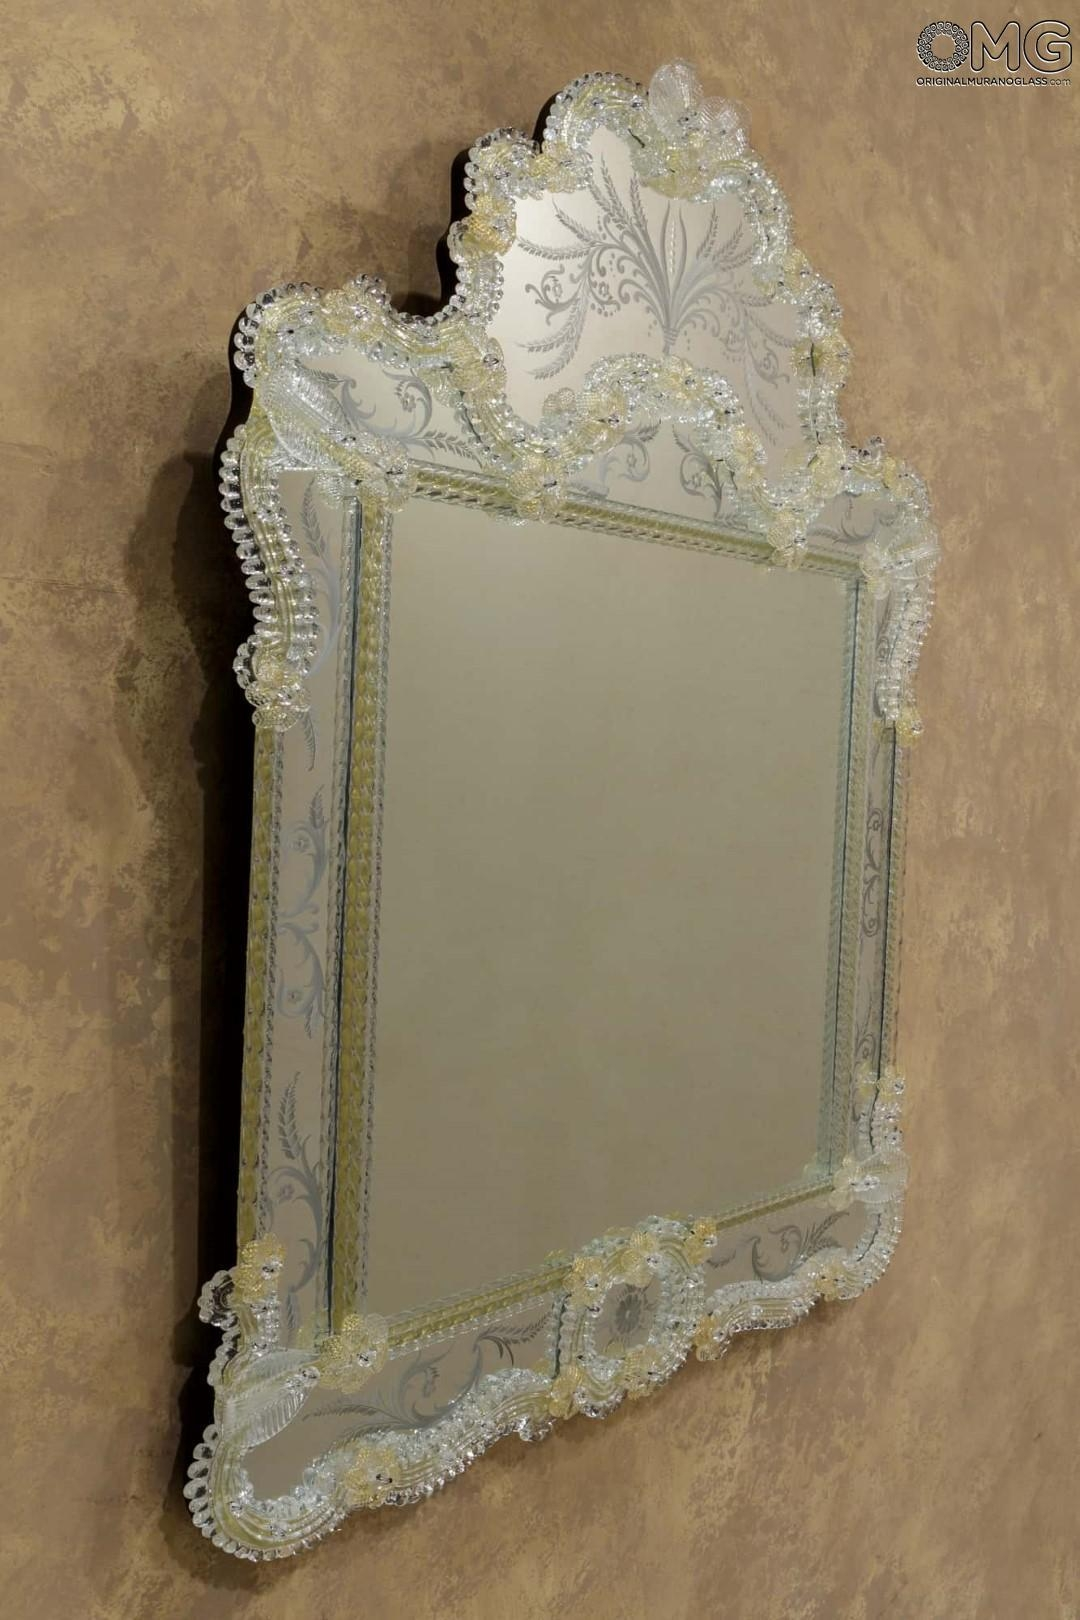 Ca Zanardi – Wall Venetian Mirror – Murano Glass And Gold 24Carats Inside Venetian Glass Mirrors Sale (Image 4 of 20)